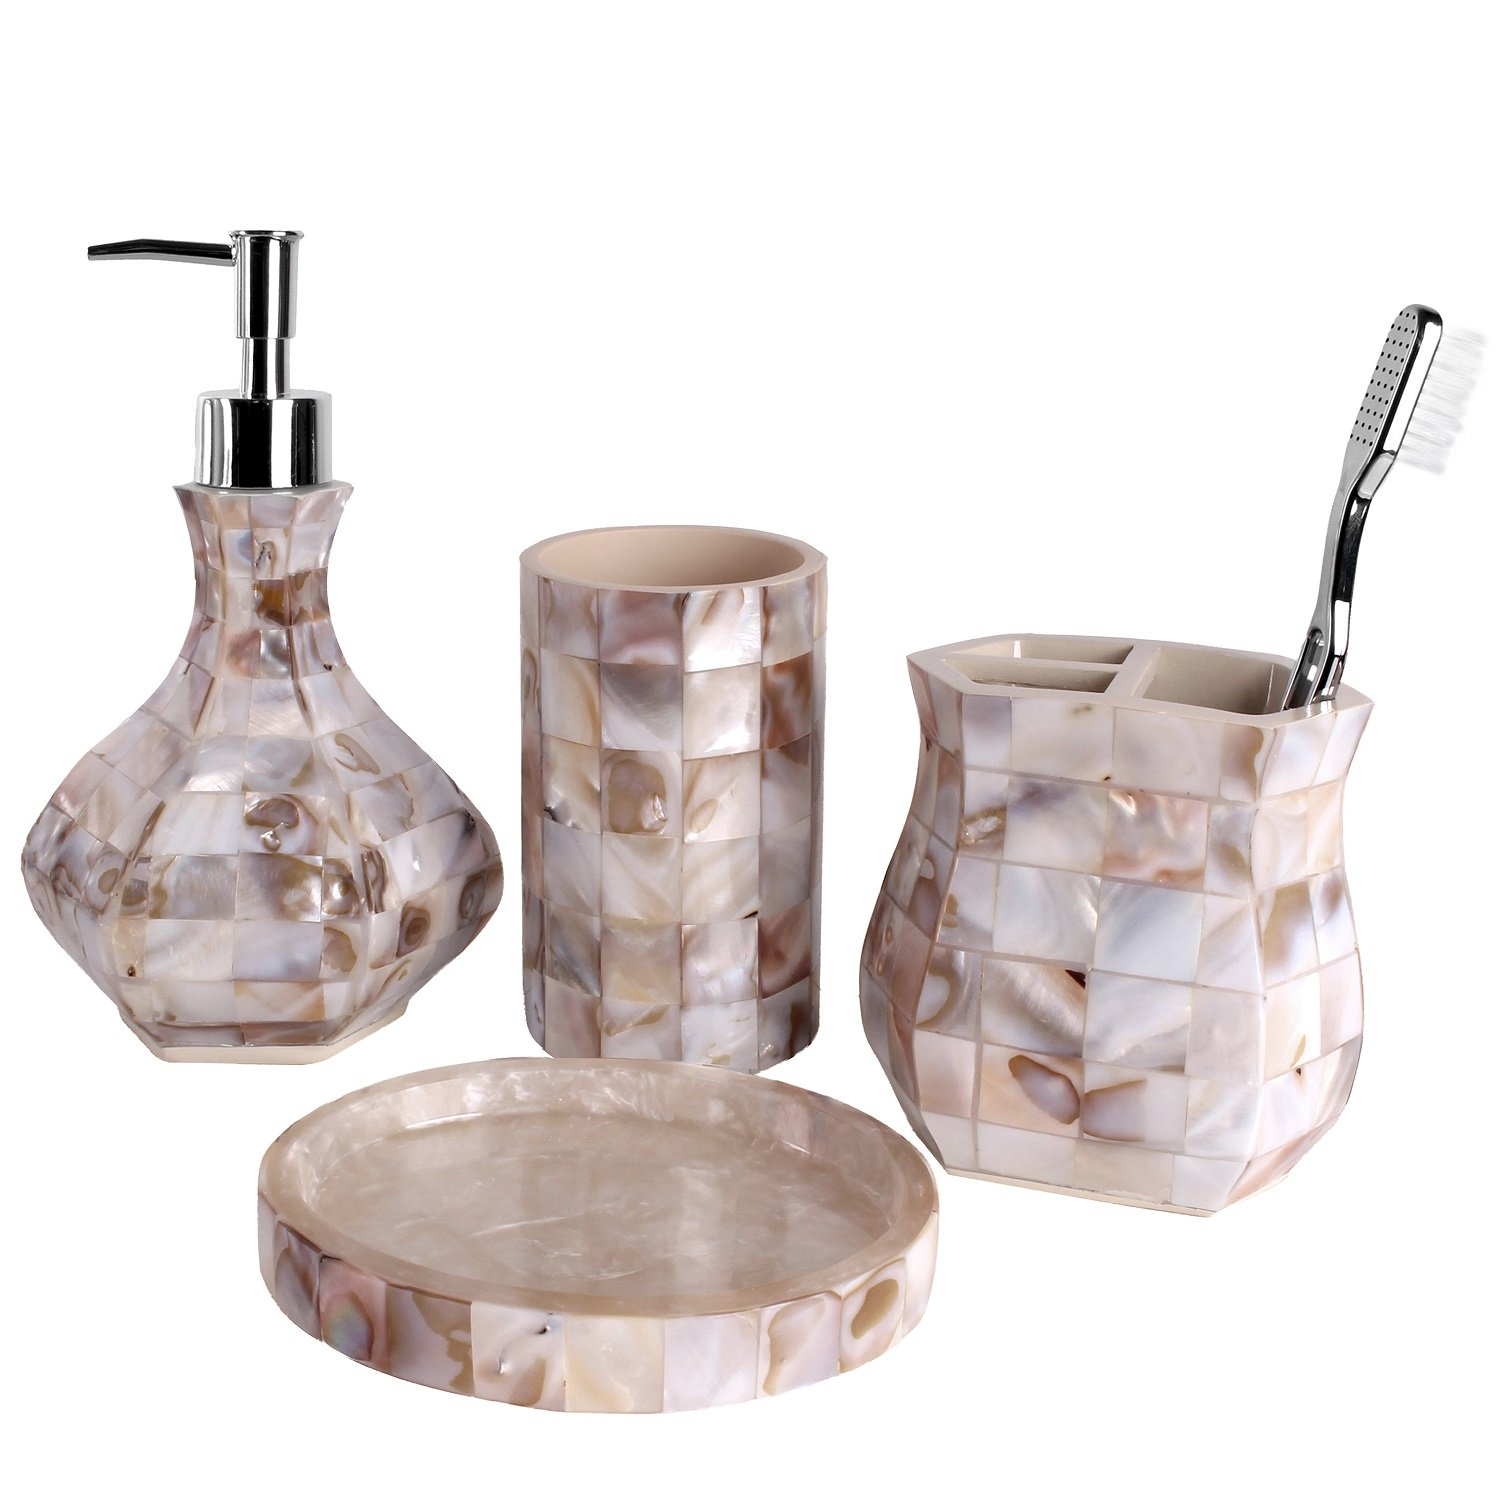 Amazon.com: Creative Scents Milano Bath Ensemble, 4 Piece Bathroom  Accessories Set, Mother Of Pearl Milano Collection Bath Set Features Soap  Dispenser, ...